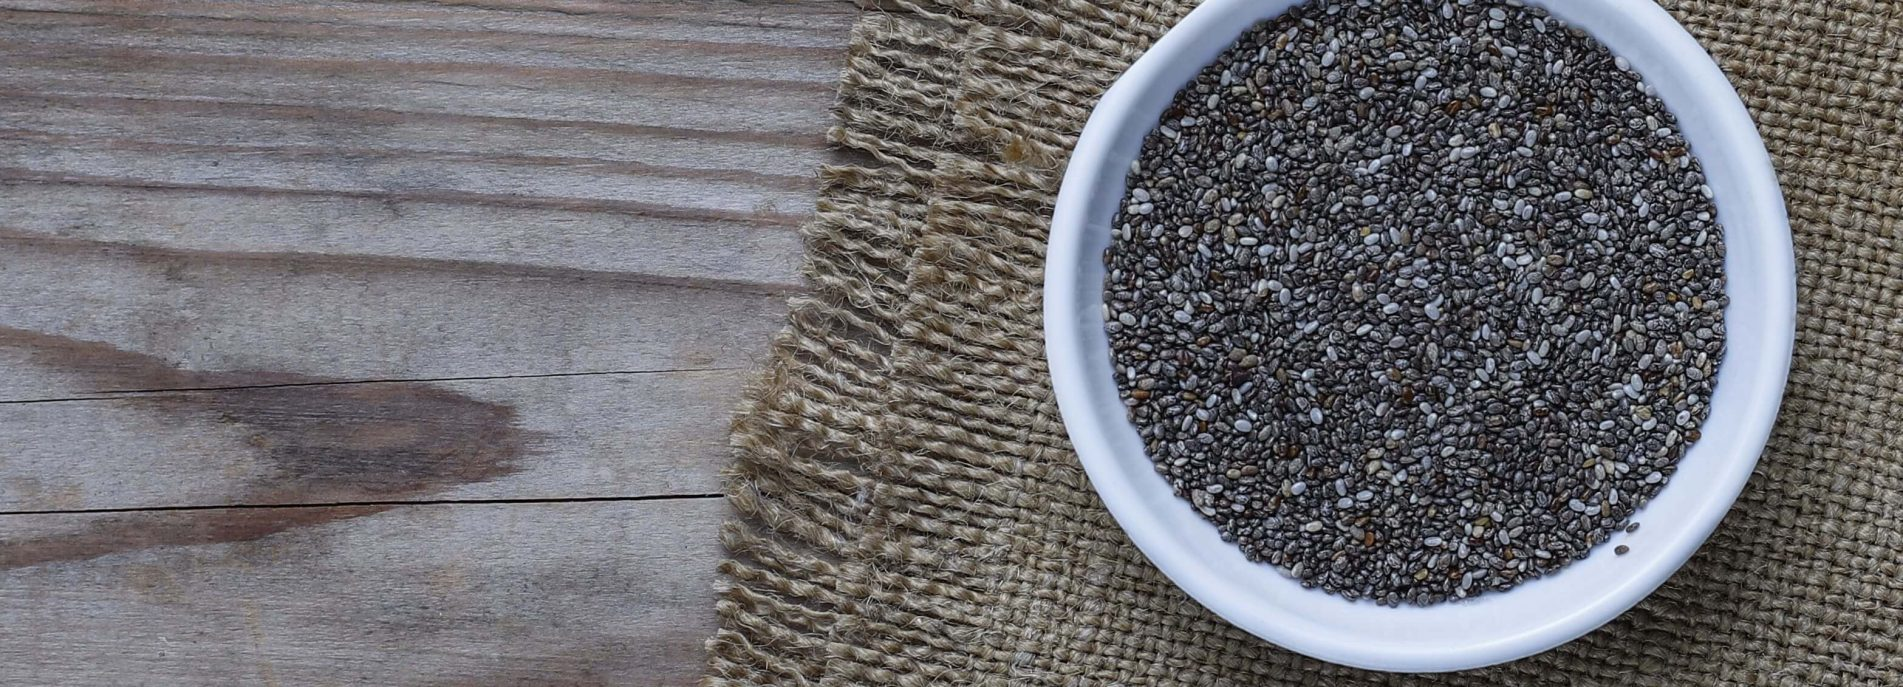 Small but powerful: The health benefits of chia seeds